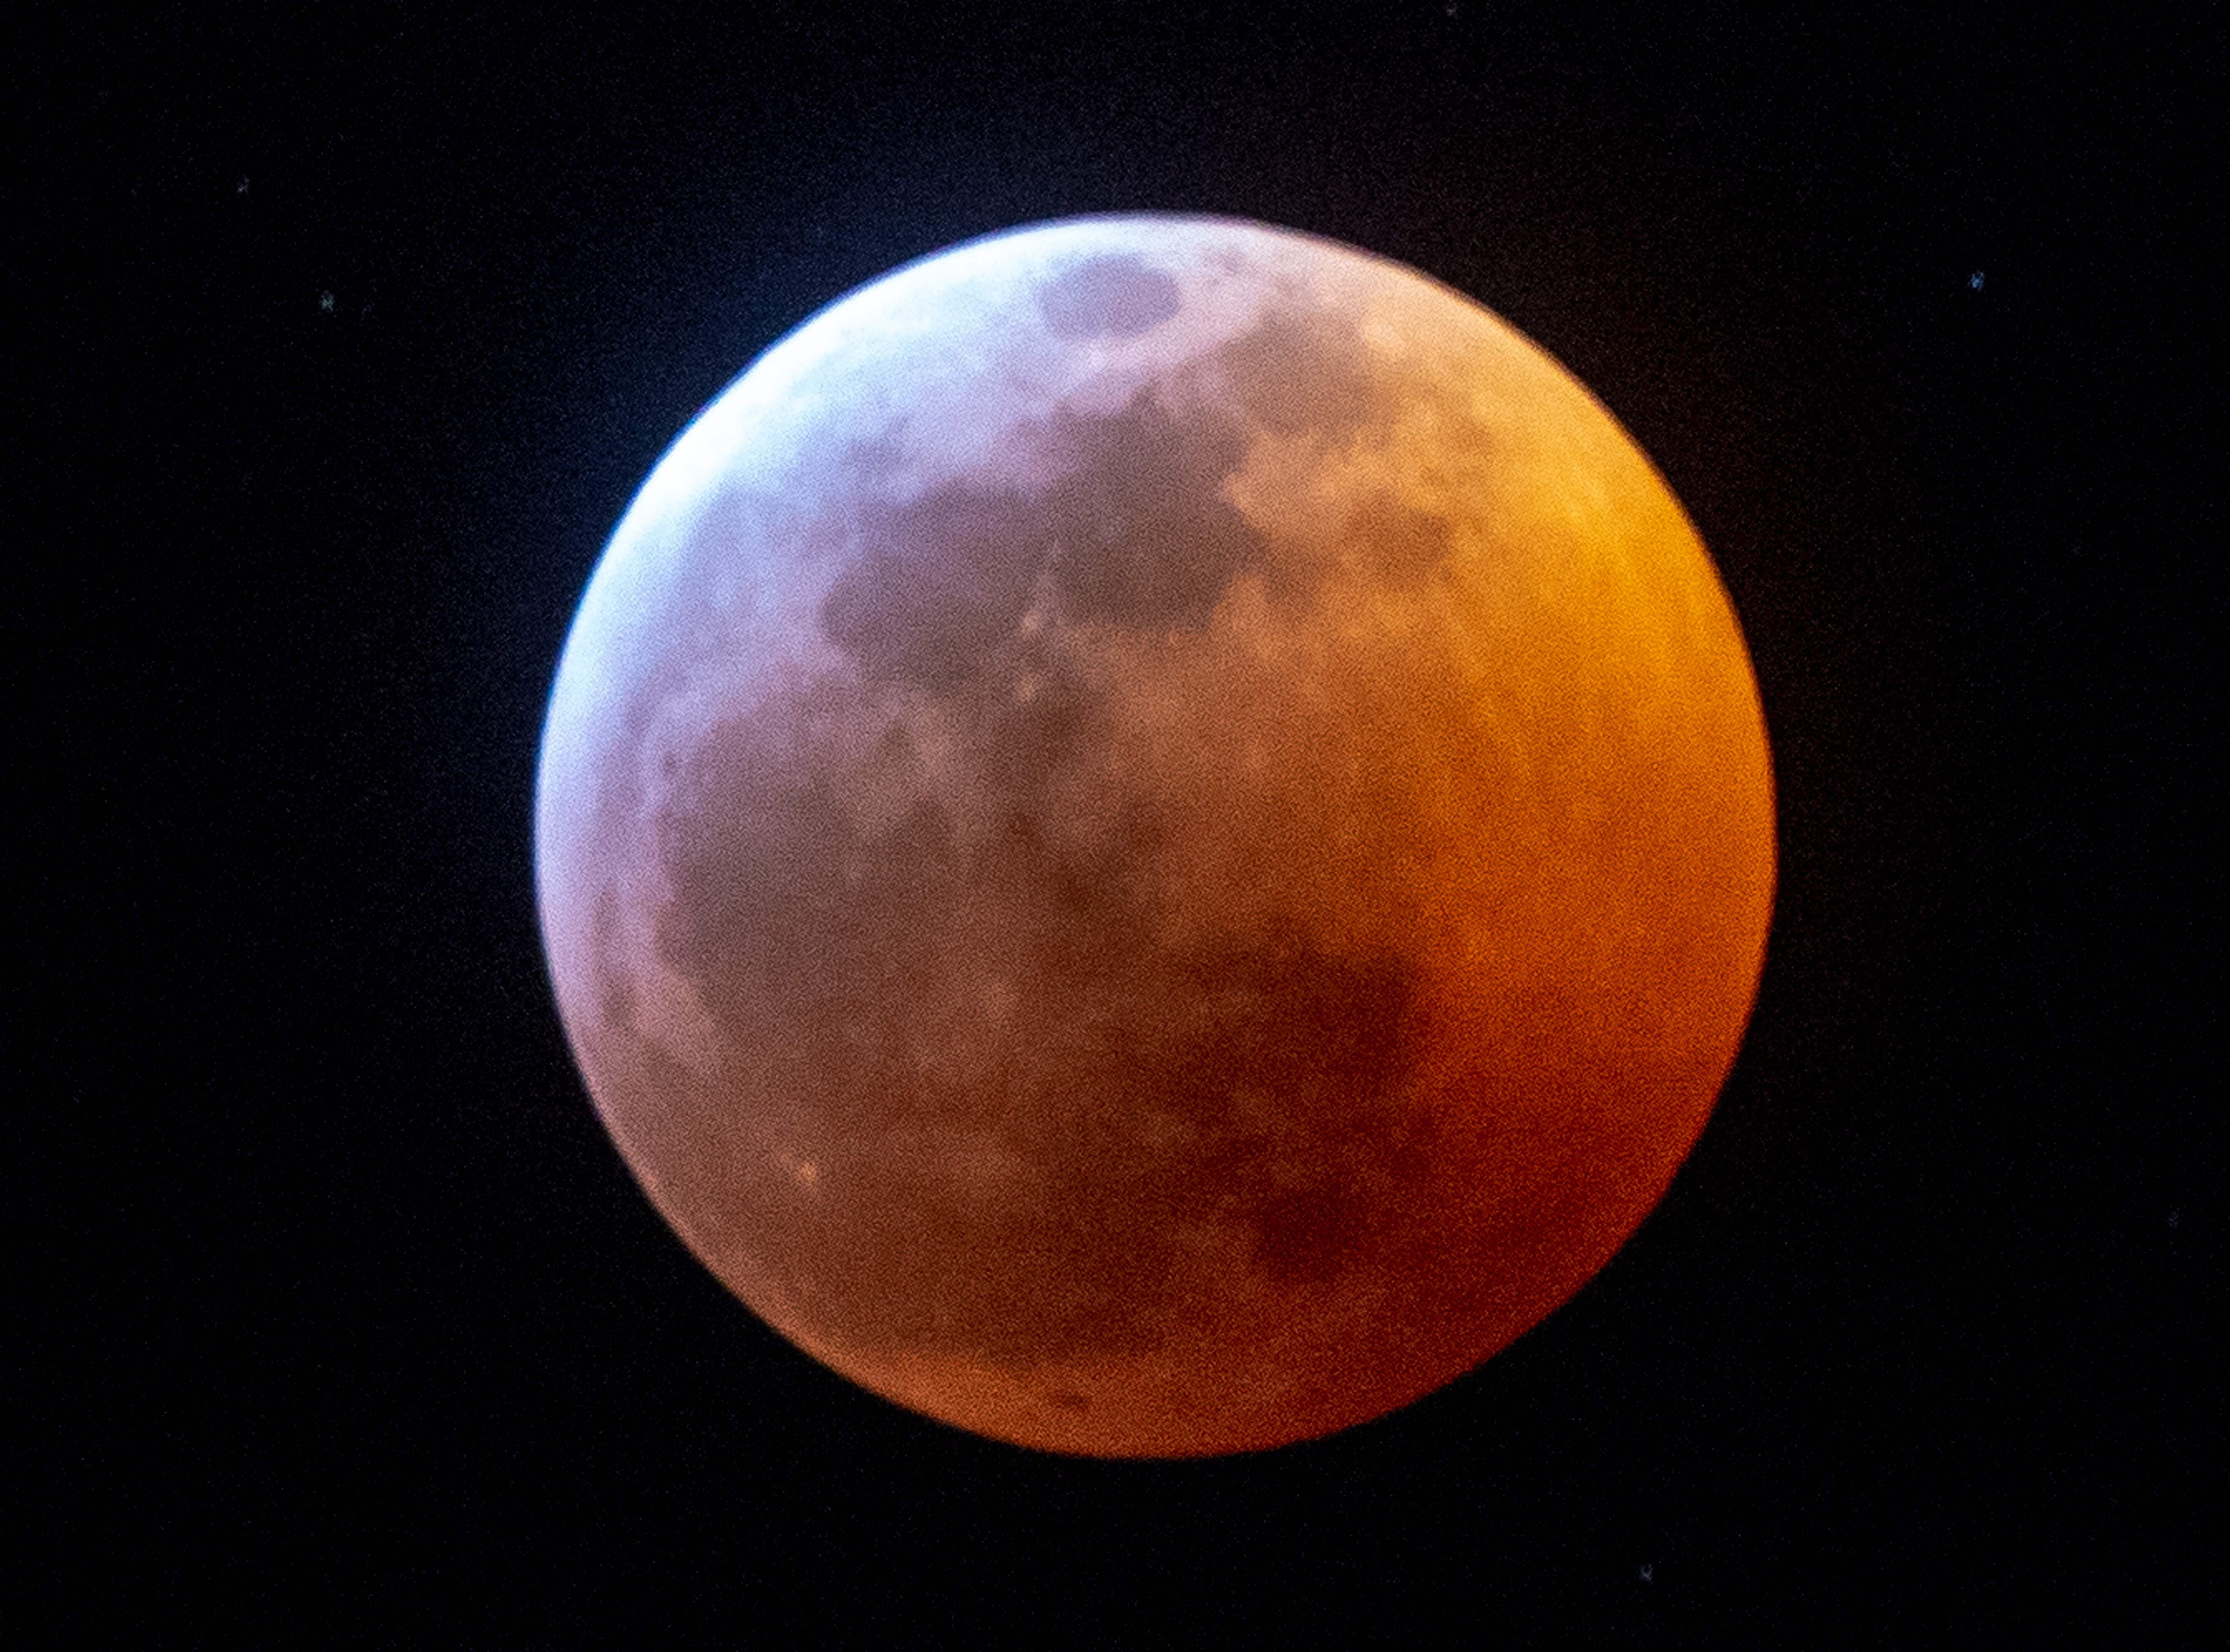 Earth's shadow almost totally obscures the view of the so-called Super Blood Wolf Moon during a total lunar eclipse, on Sunday January 20, 2019, in Miami, Florida. - The January 21 total lunar eclipse will be the last one until May 2021, and the last one visible from the United States until 2022. (Photo by Gaston De Cardenas / AFP)GASTON DE CARDENAS/AFP/Getty Images